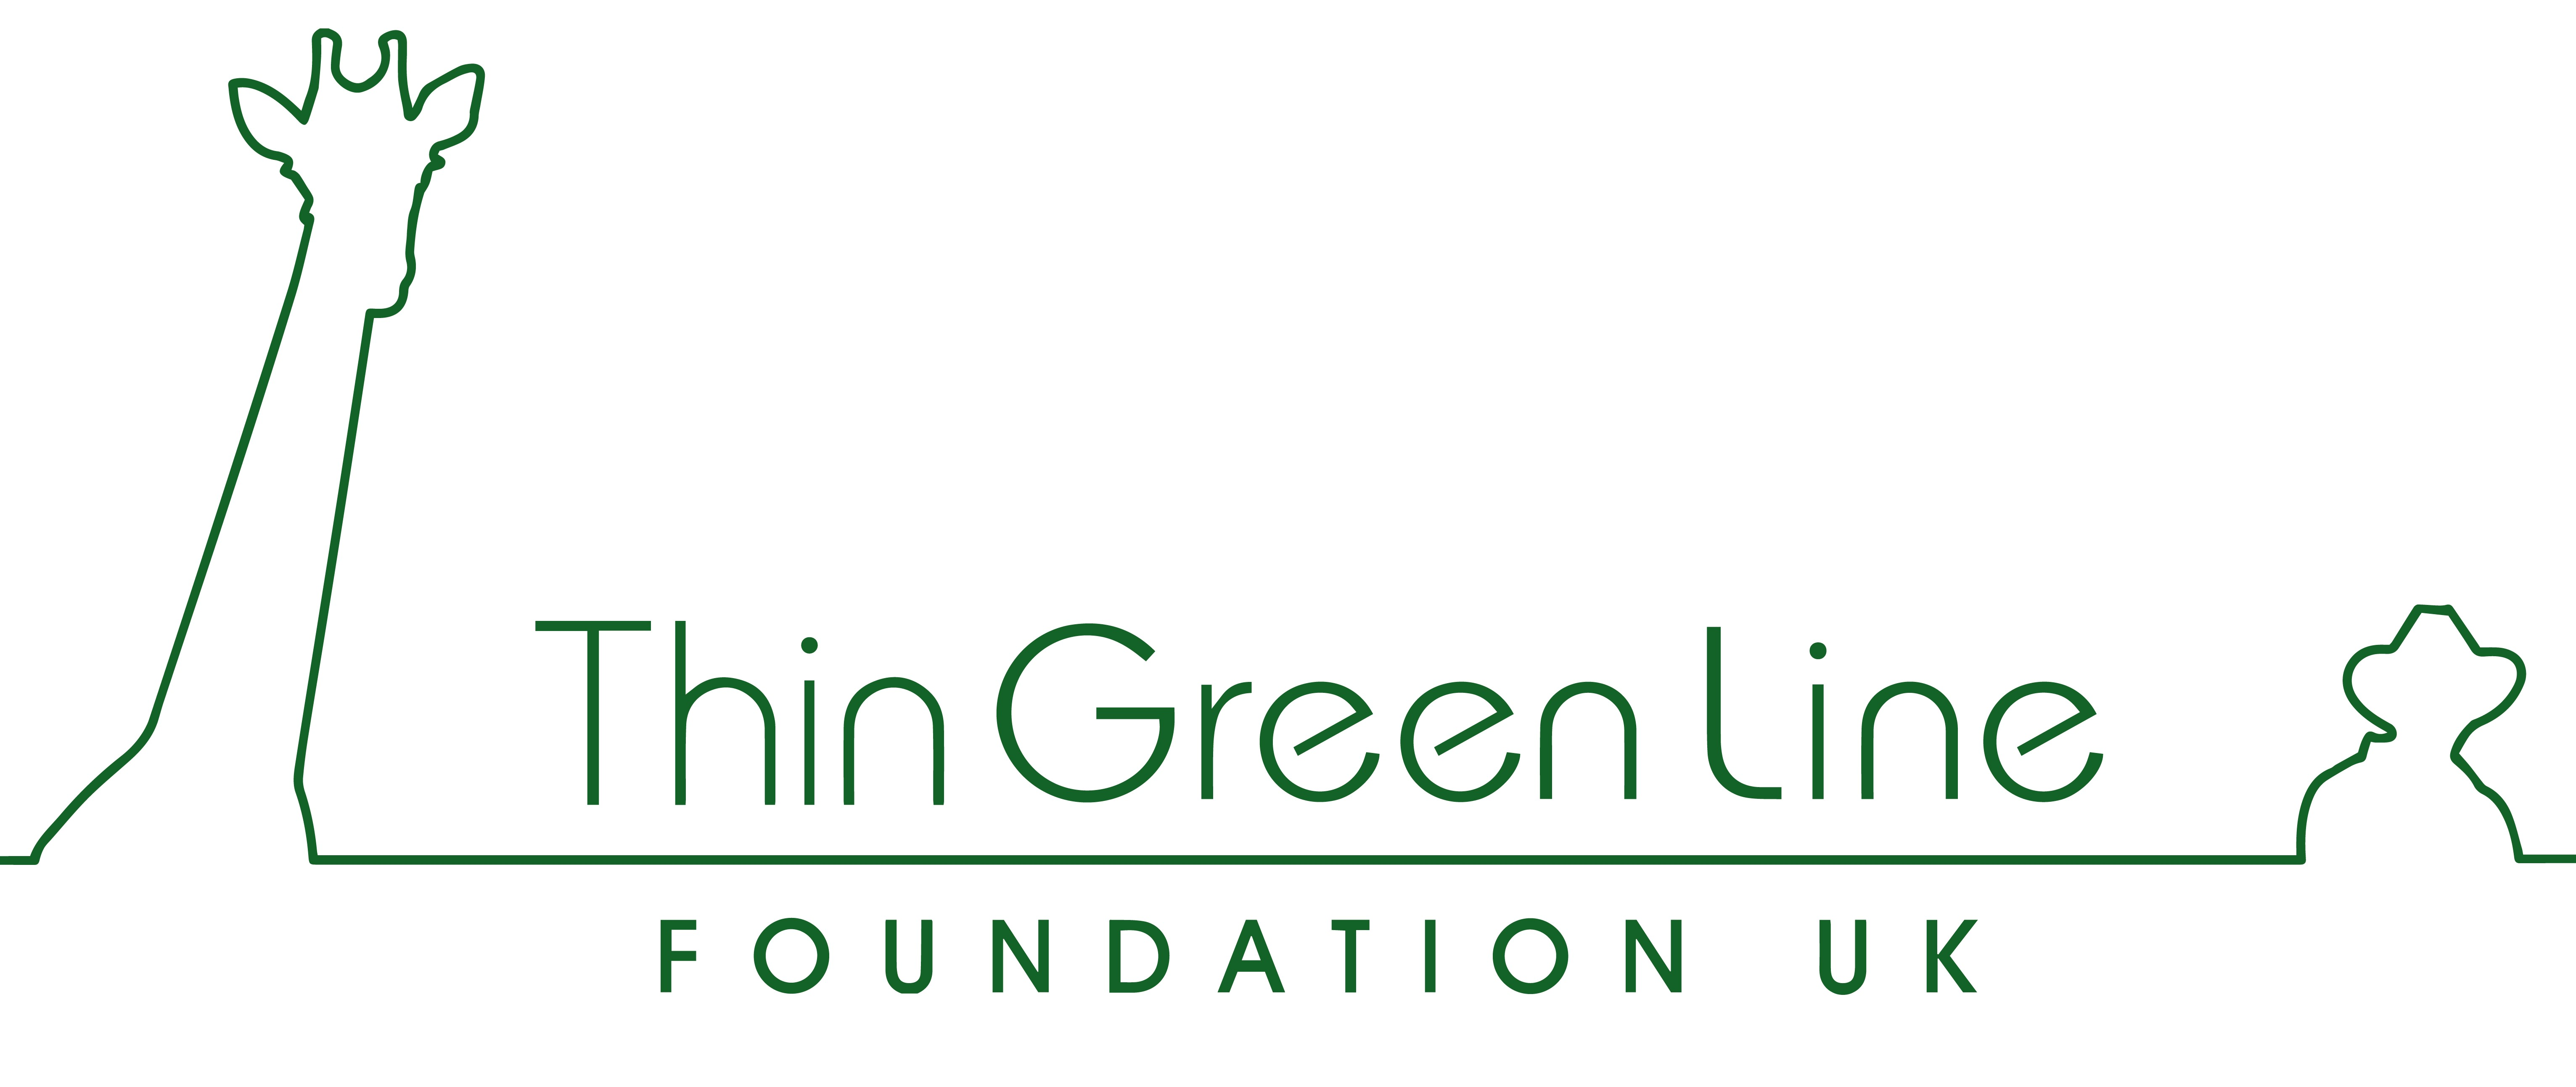 Thin Green Line Foundation UK